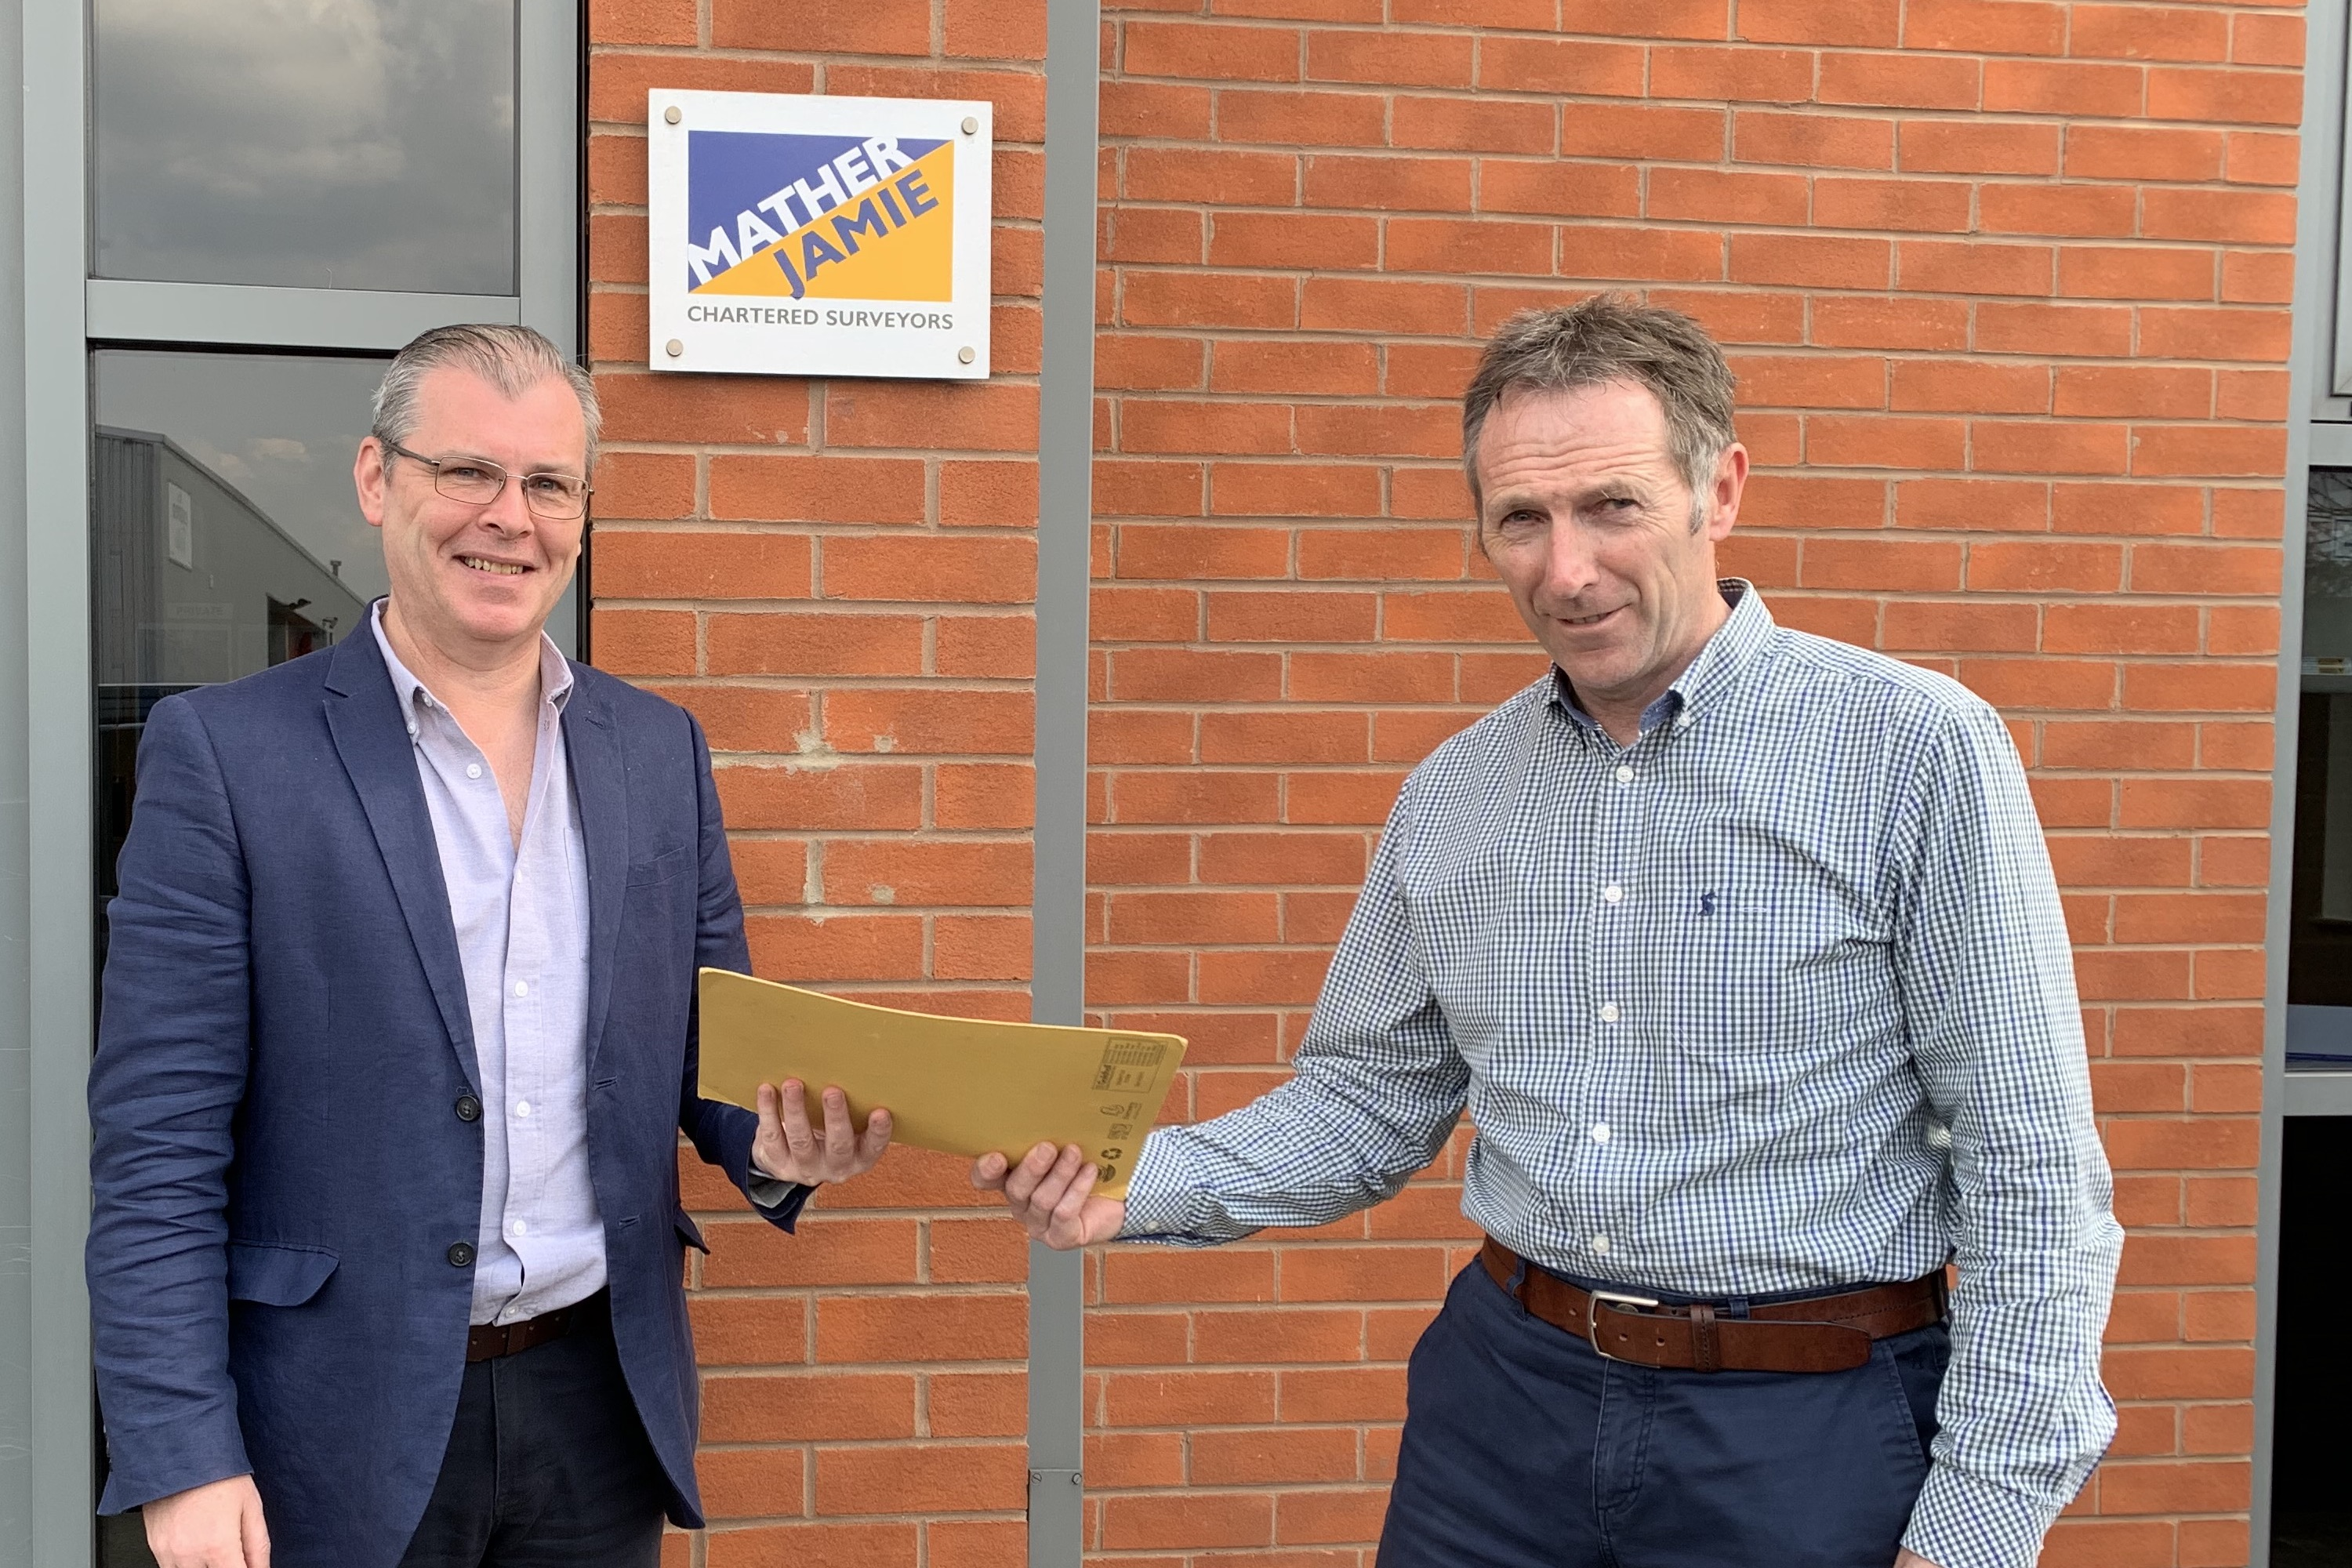 Experienced project and operations professional joins Mather Jamie